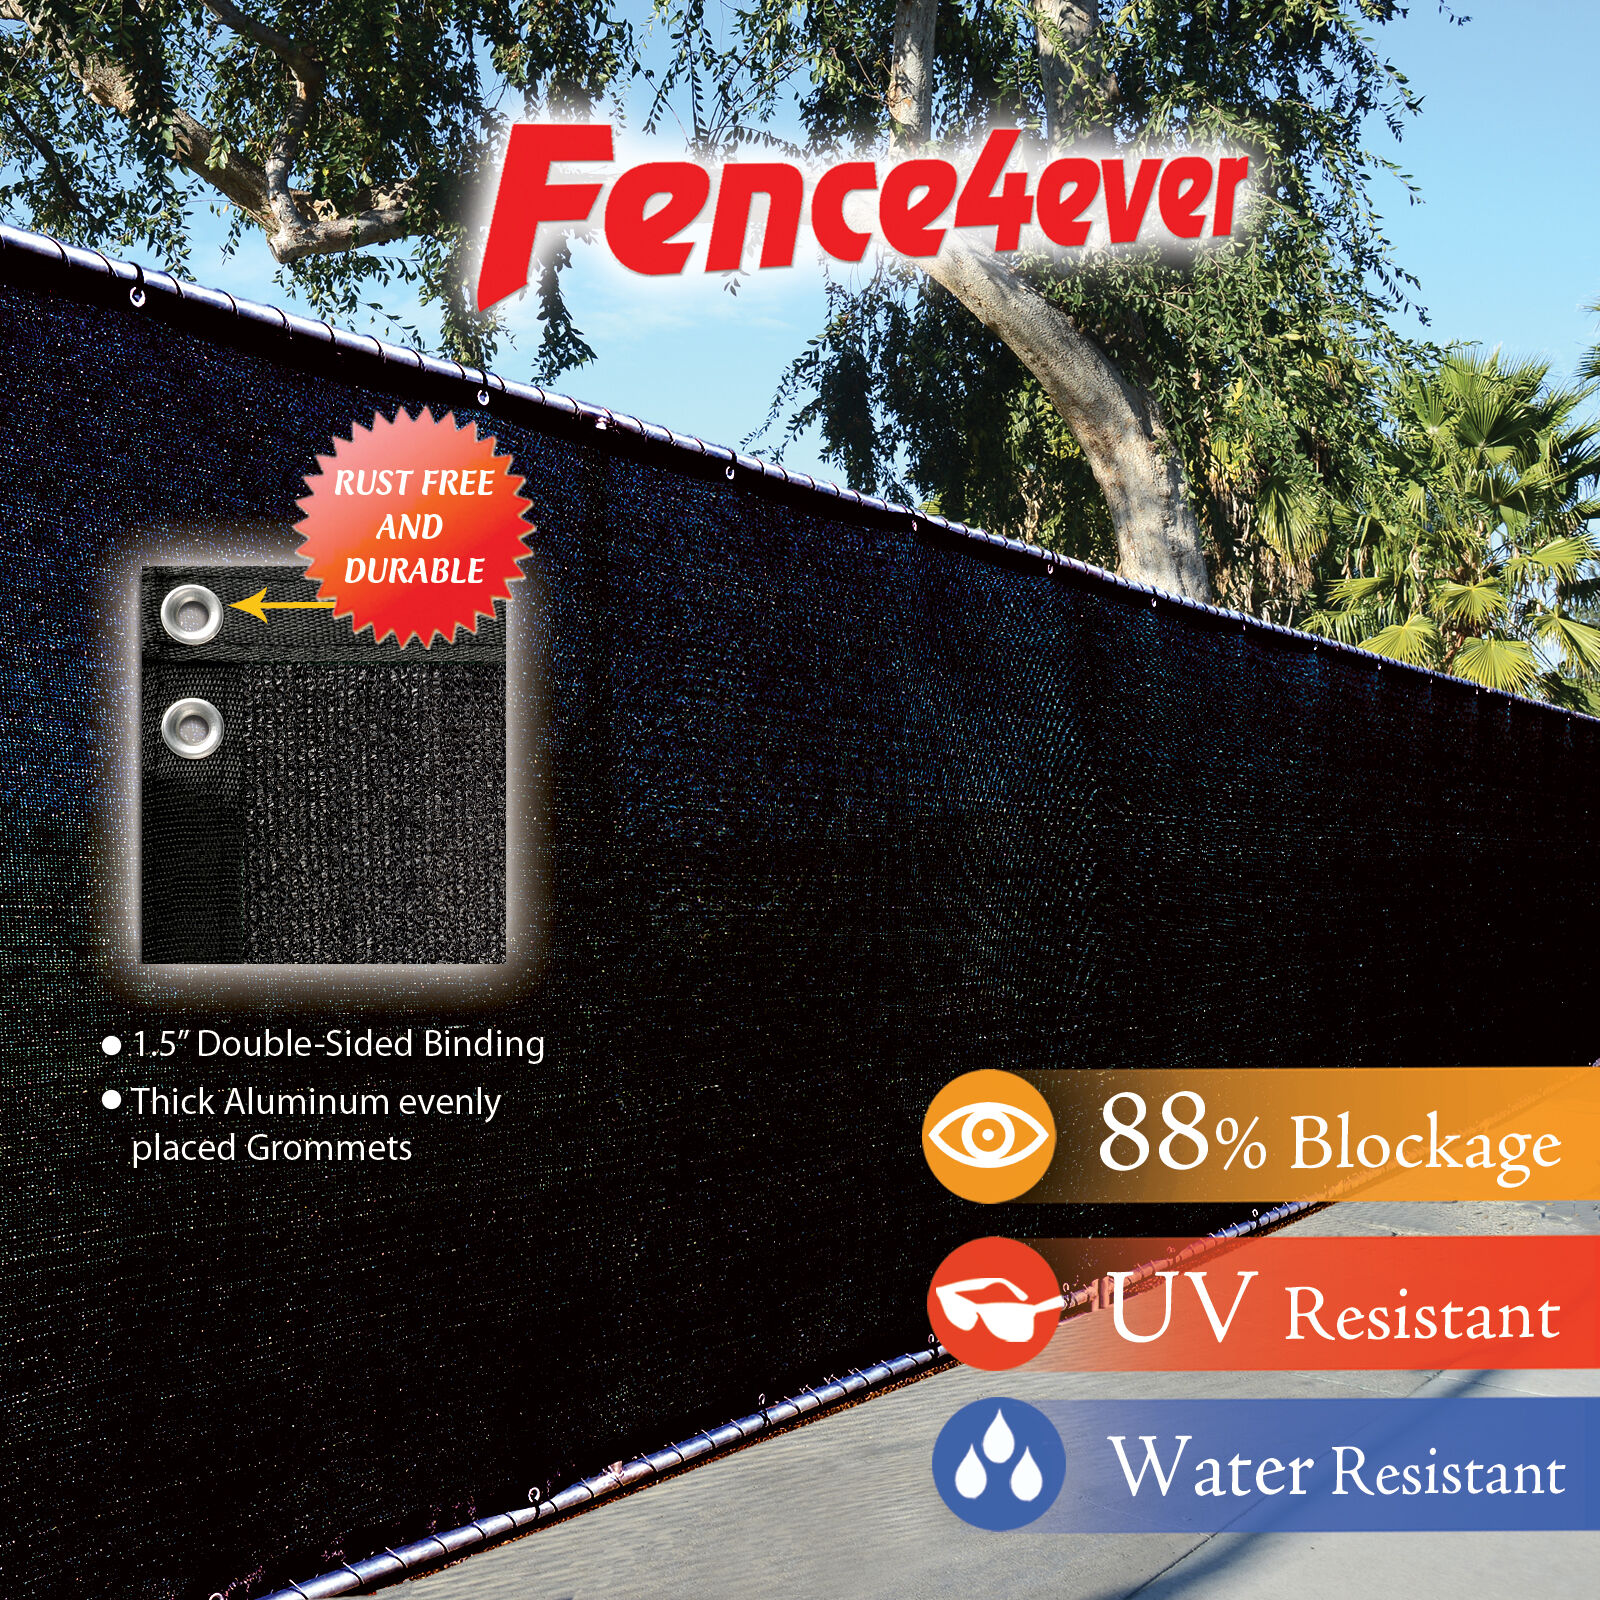 Privacy screen for chain link fence ebay - Black 6 X50 Fence Windscreen Privacy Screen Shade Cover Fabric Mesh Garden